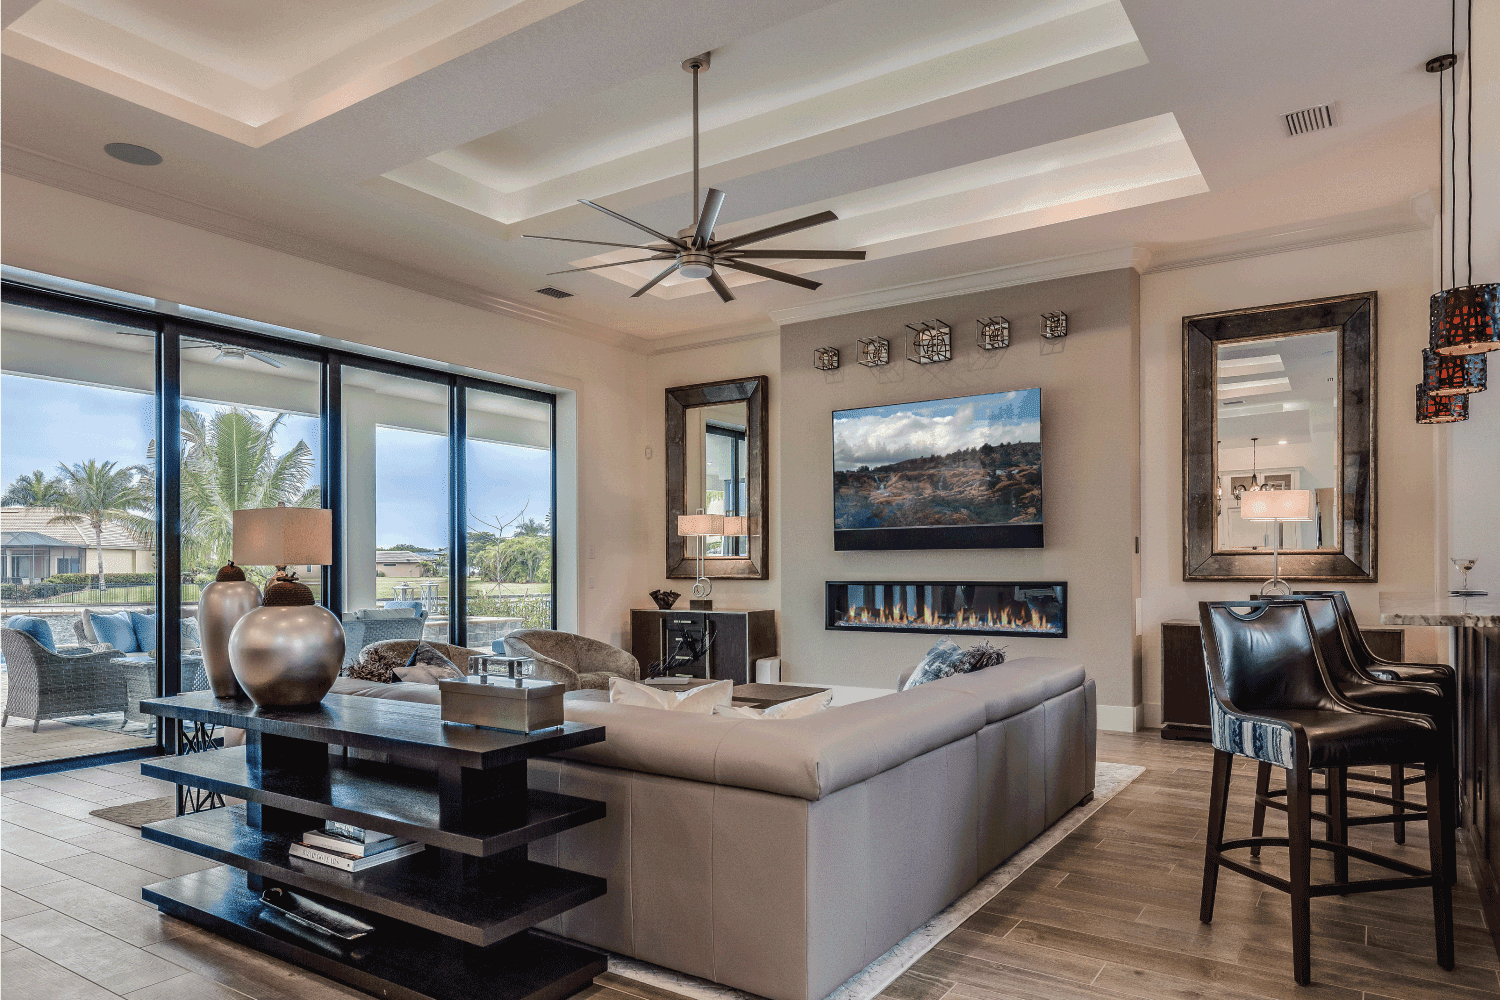 Coffered ceiling and linear fireplace give this room a luxury feel